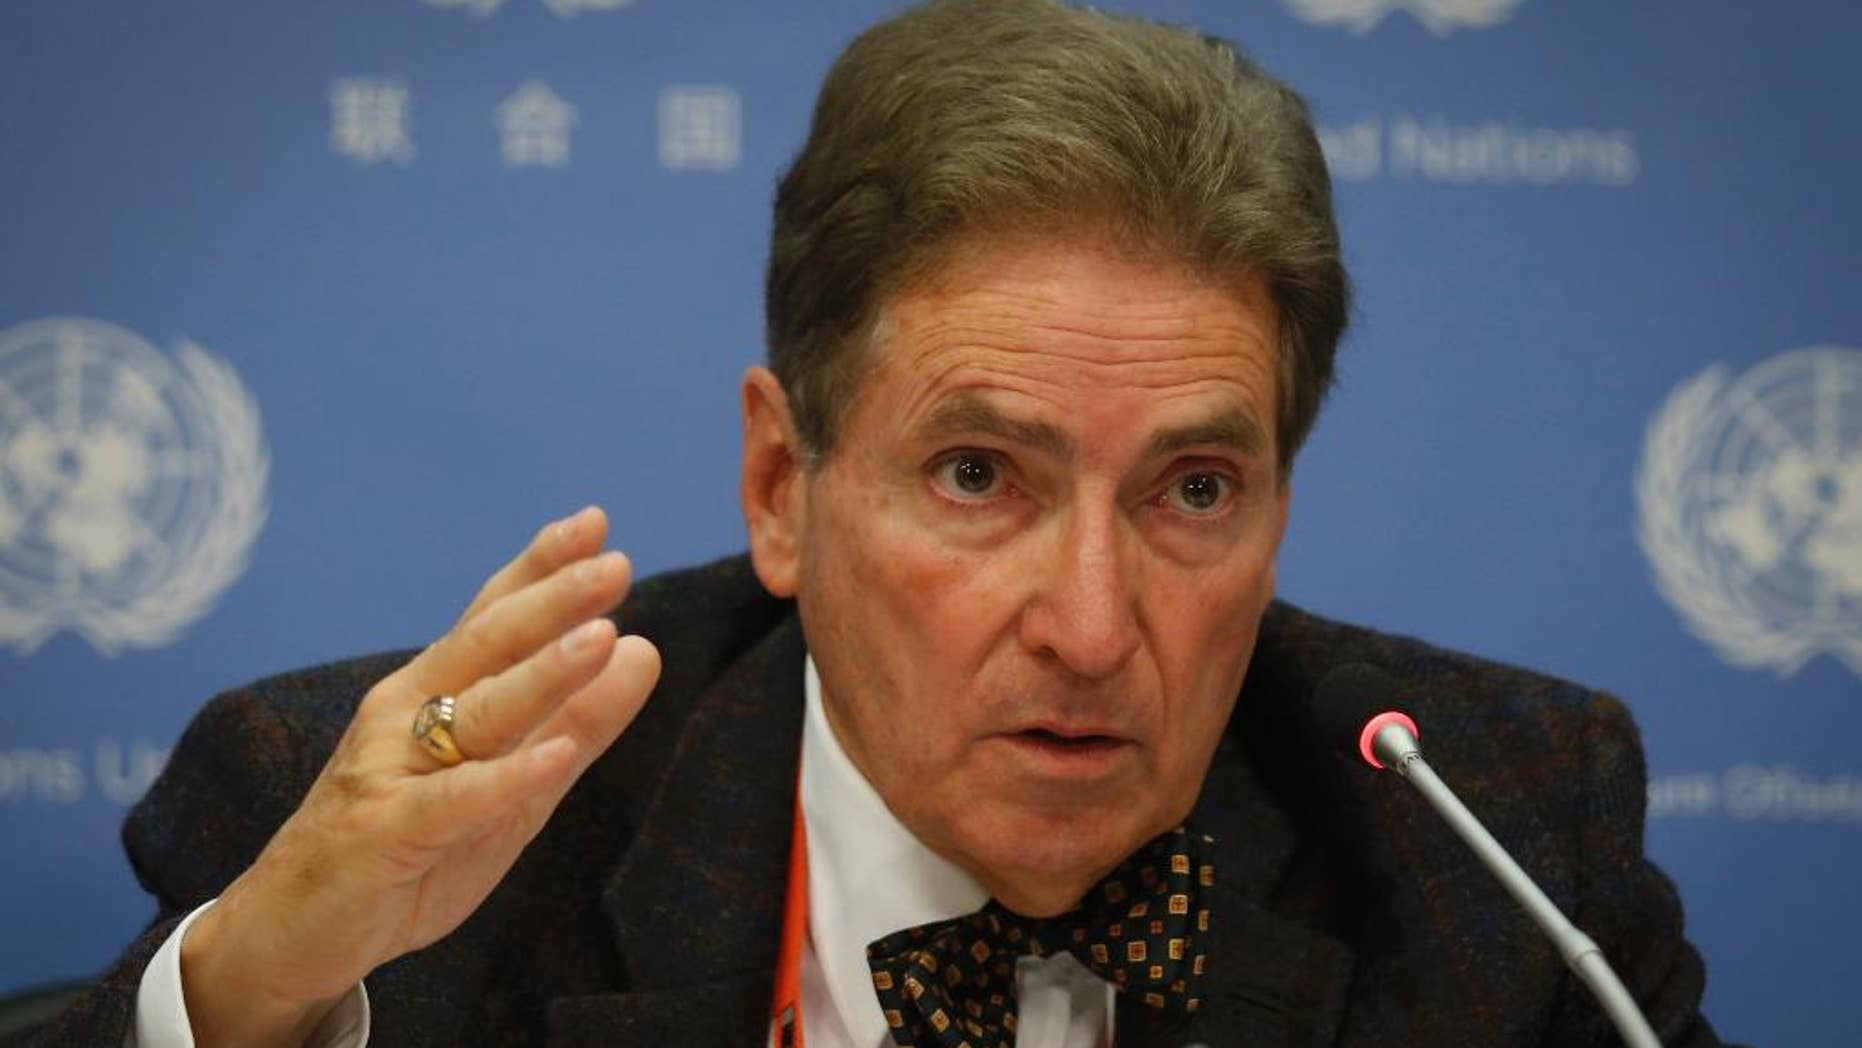 Alfred de Zayas, U.N. independent expert on international order, hold a news conference calling for the abolition of tax havens, Friday, Oct. 21, 2016, at U.N. headquarters. (AP Photo/Bebeto Matthews)